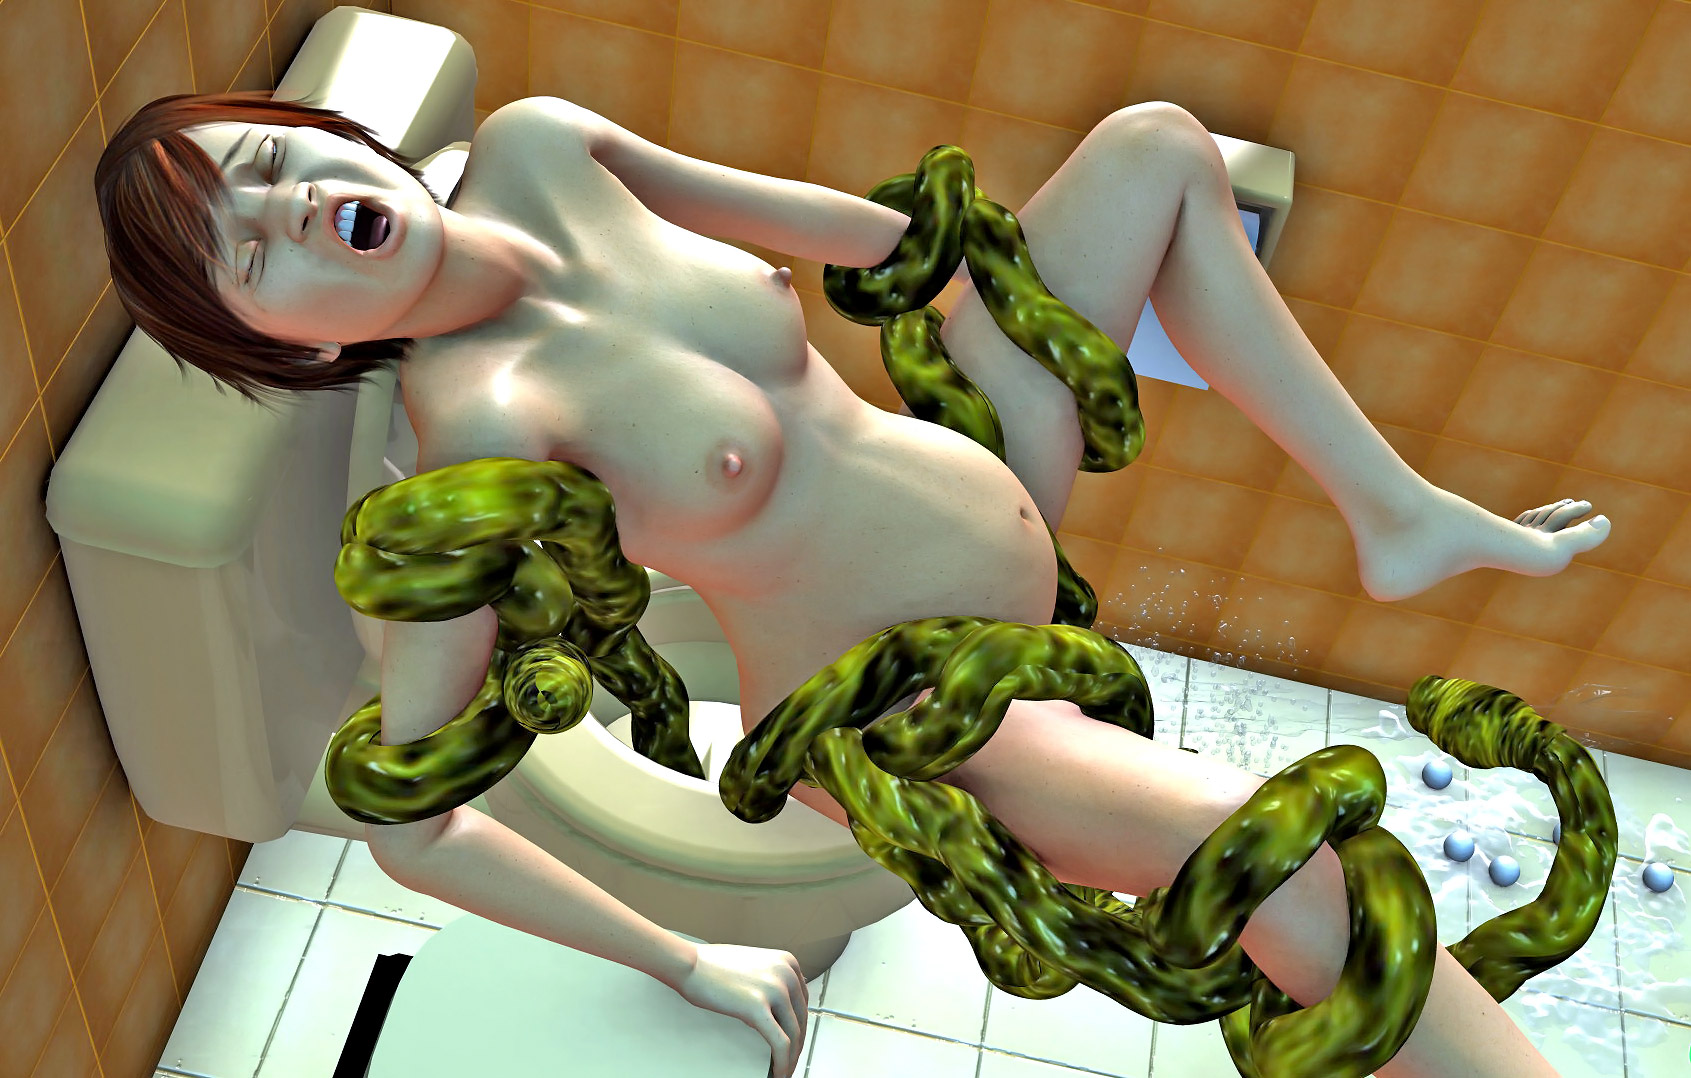 Monster tentacle rape hd sexy movie